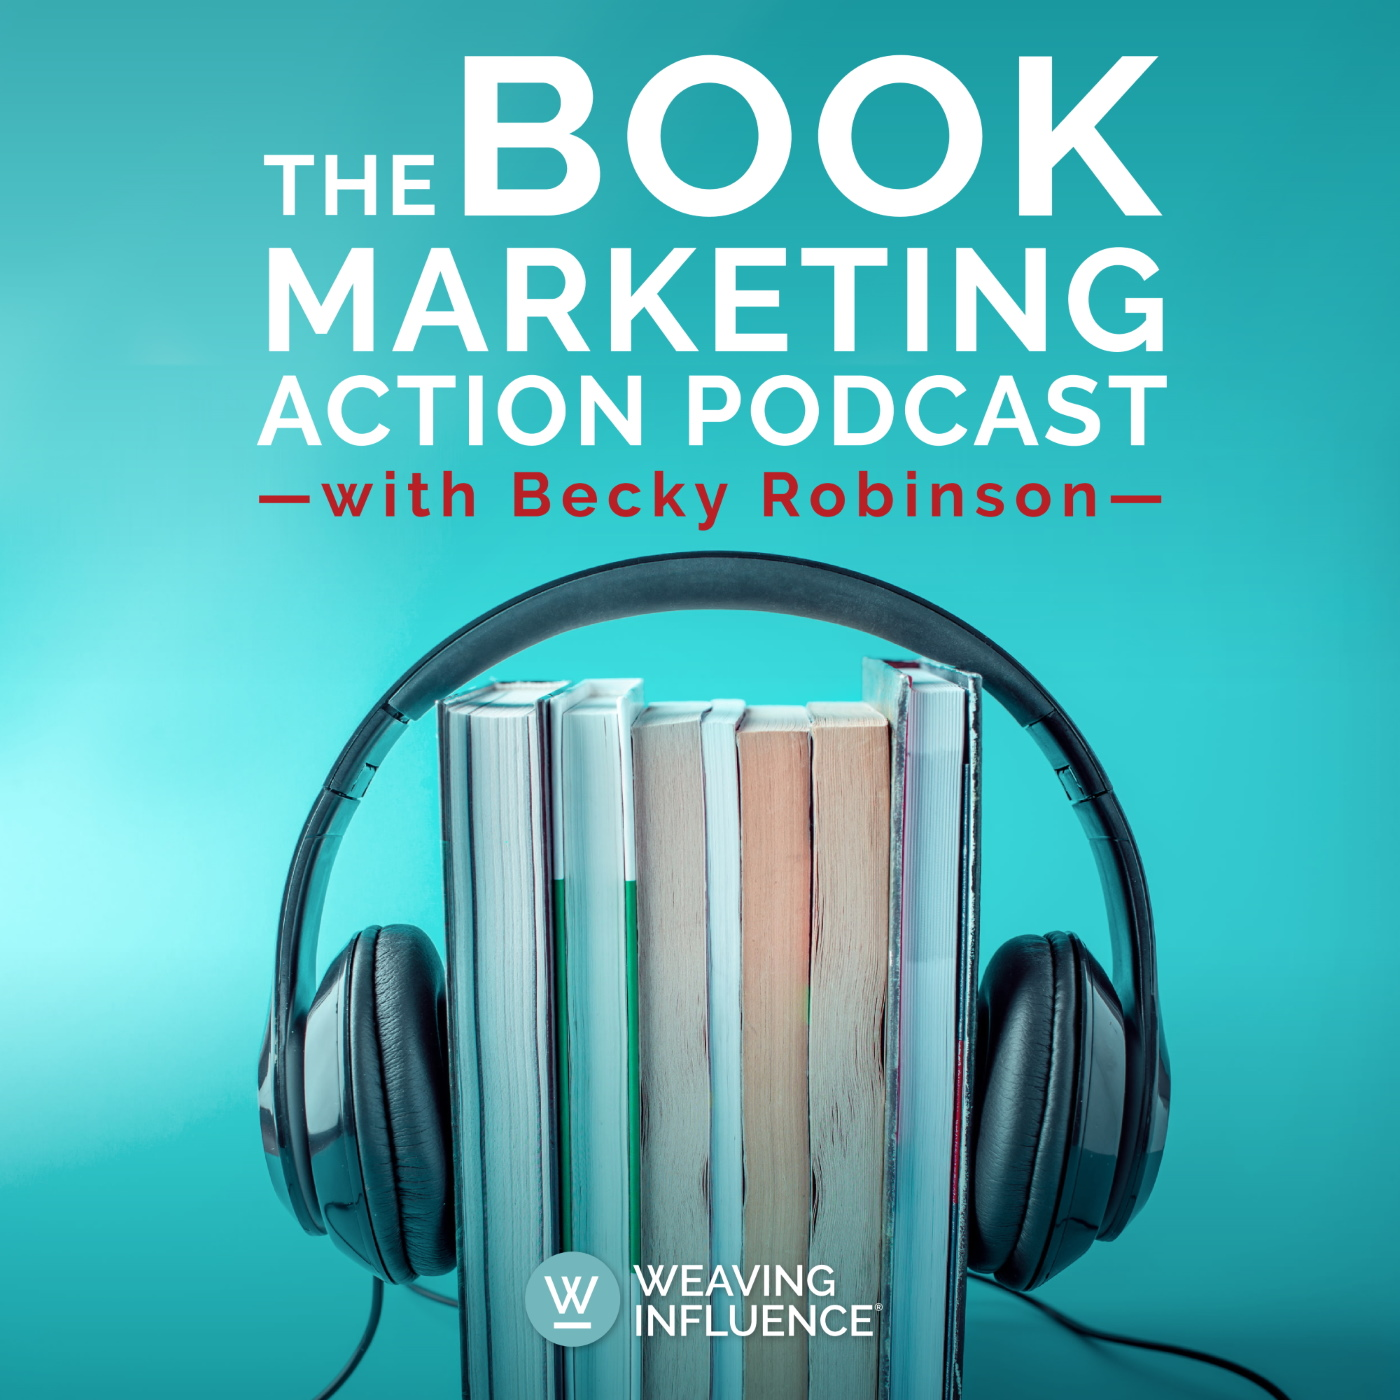 The Book Marketing Action Podcast podcast show image